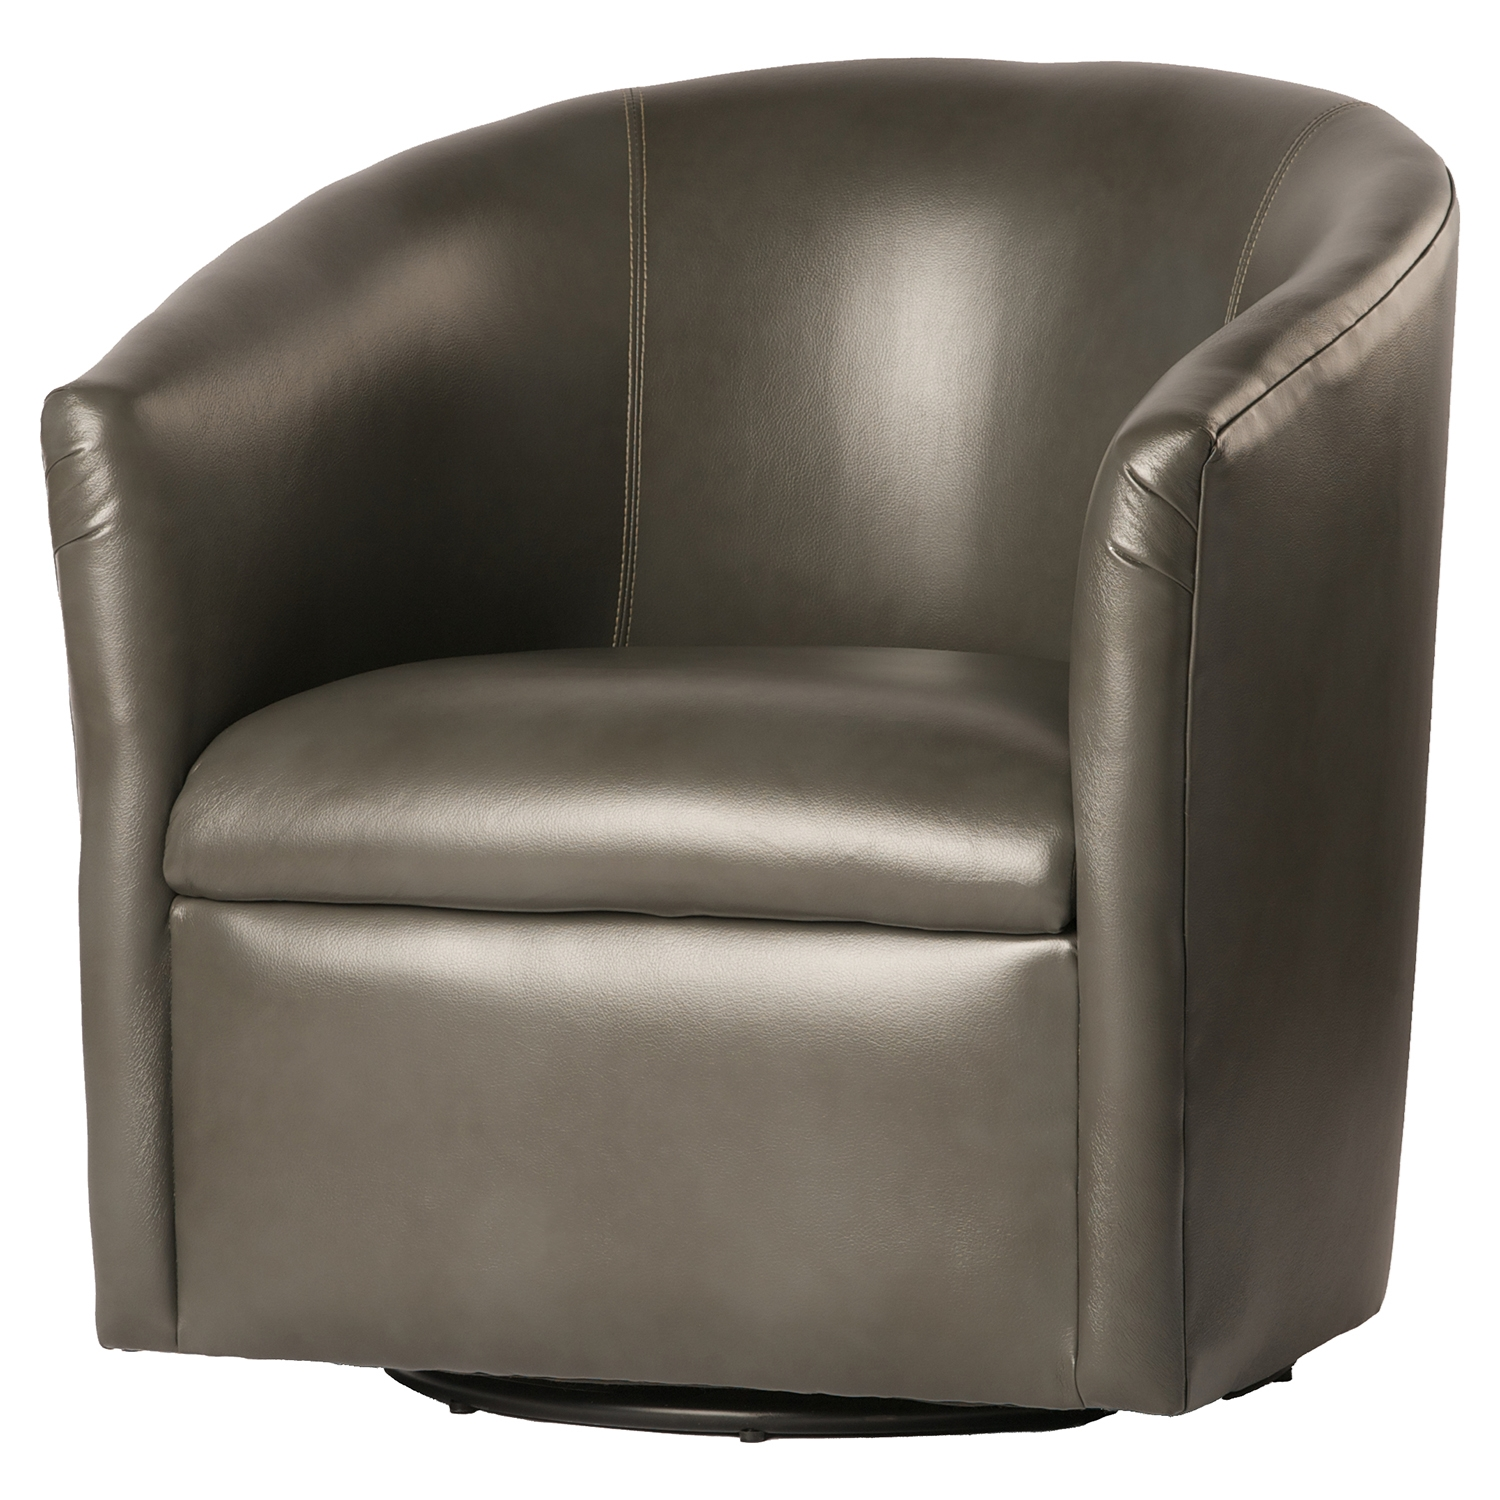 Draper Swivel Chair - Pewter